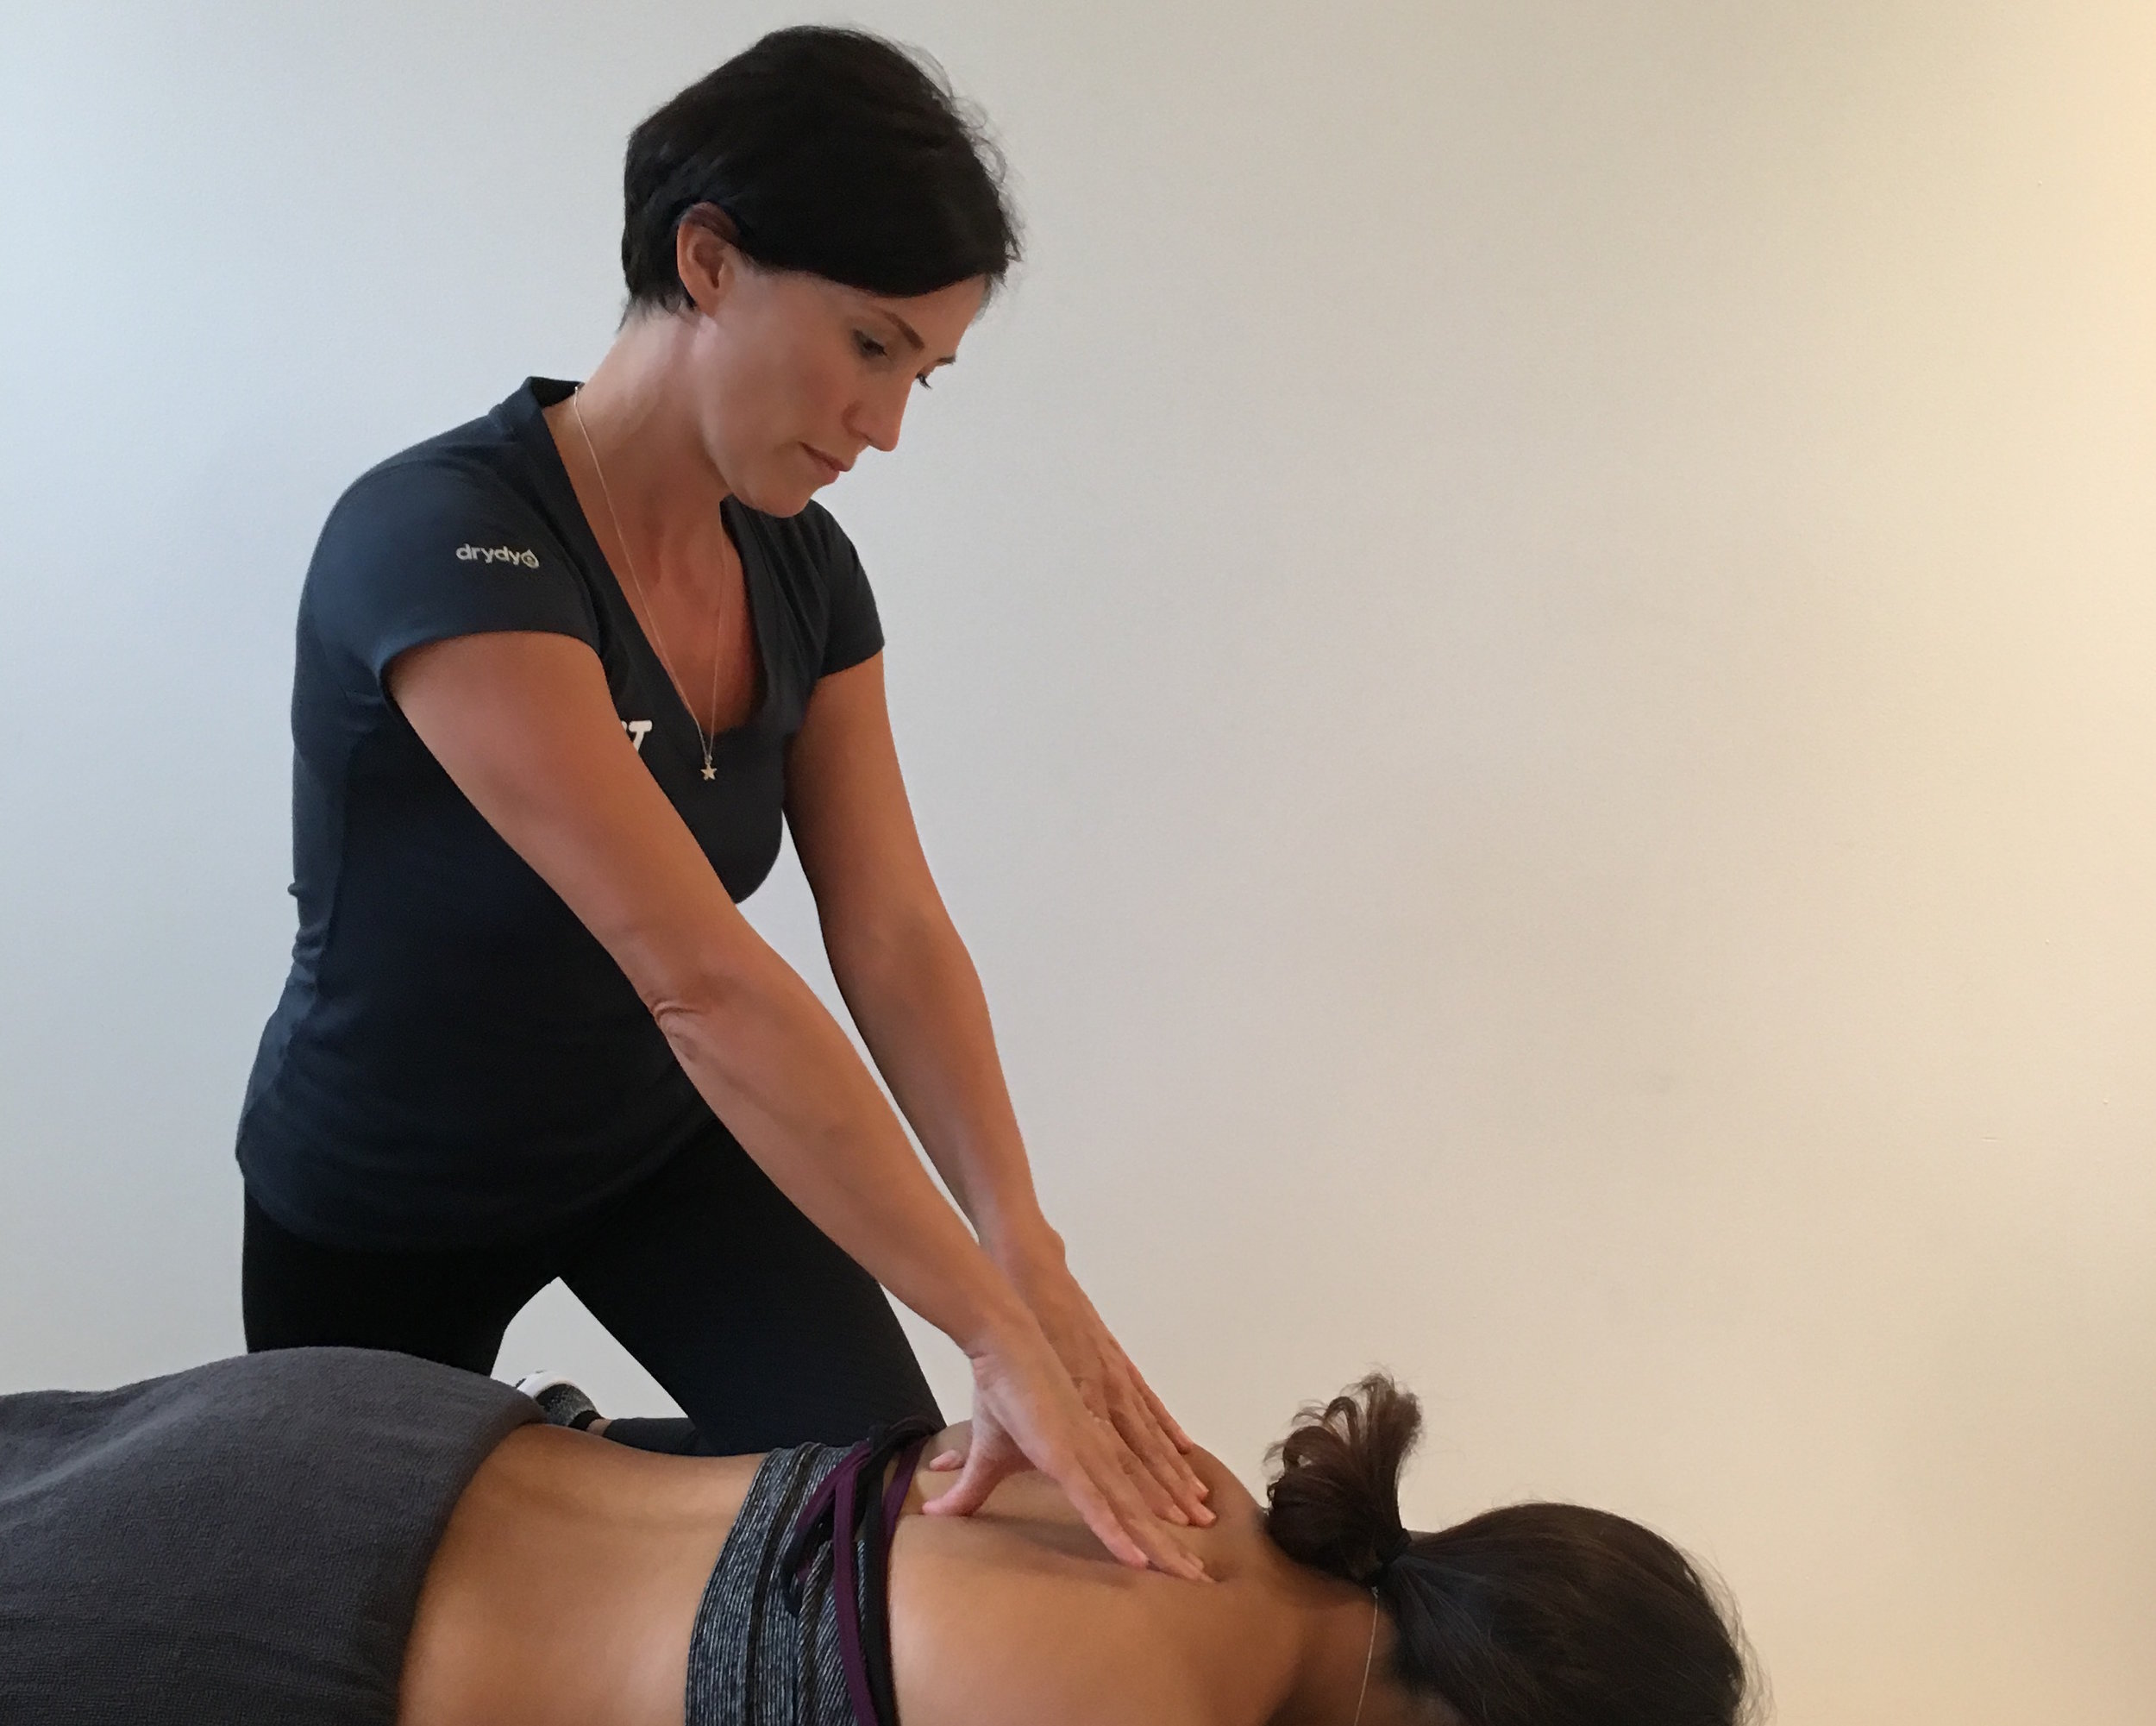 Sports Massage Therapy Promotion   Improve your athletic performance and get 1 free session when you purchase a pack of 10.